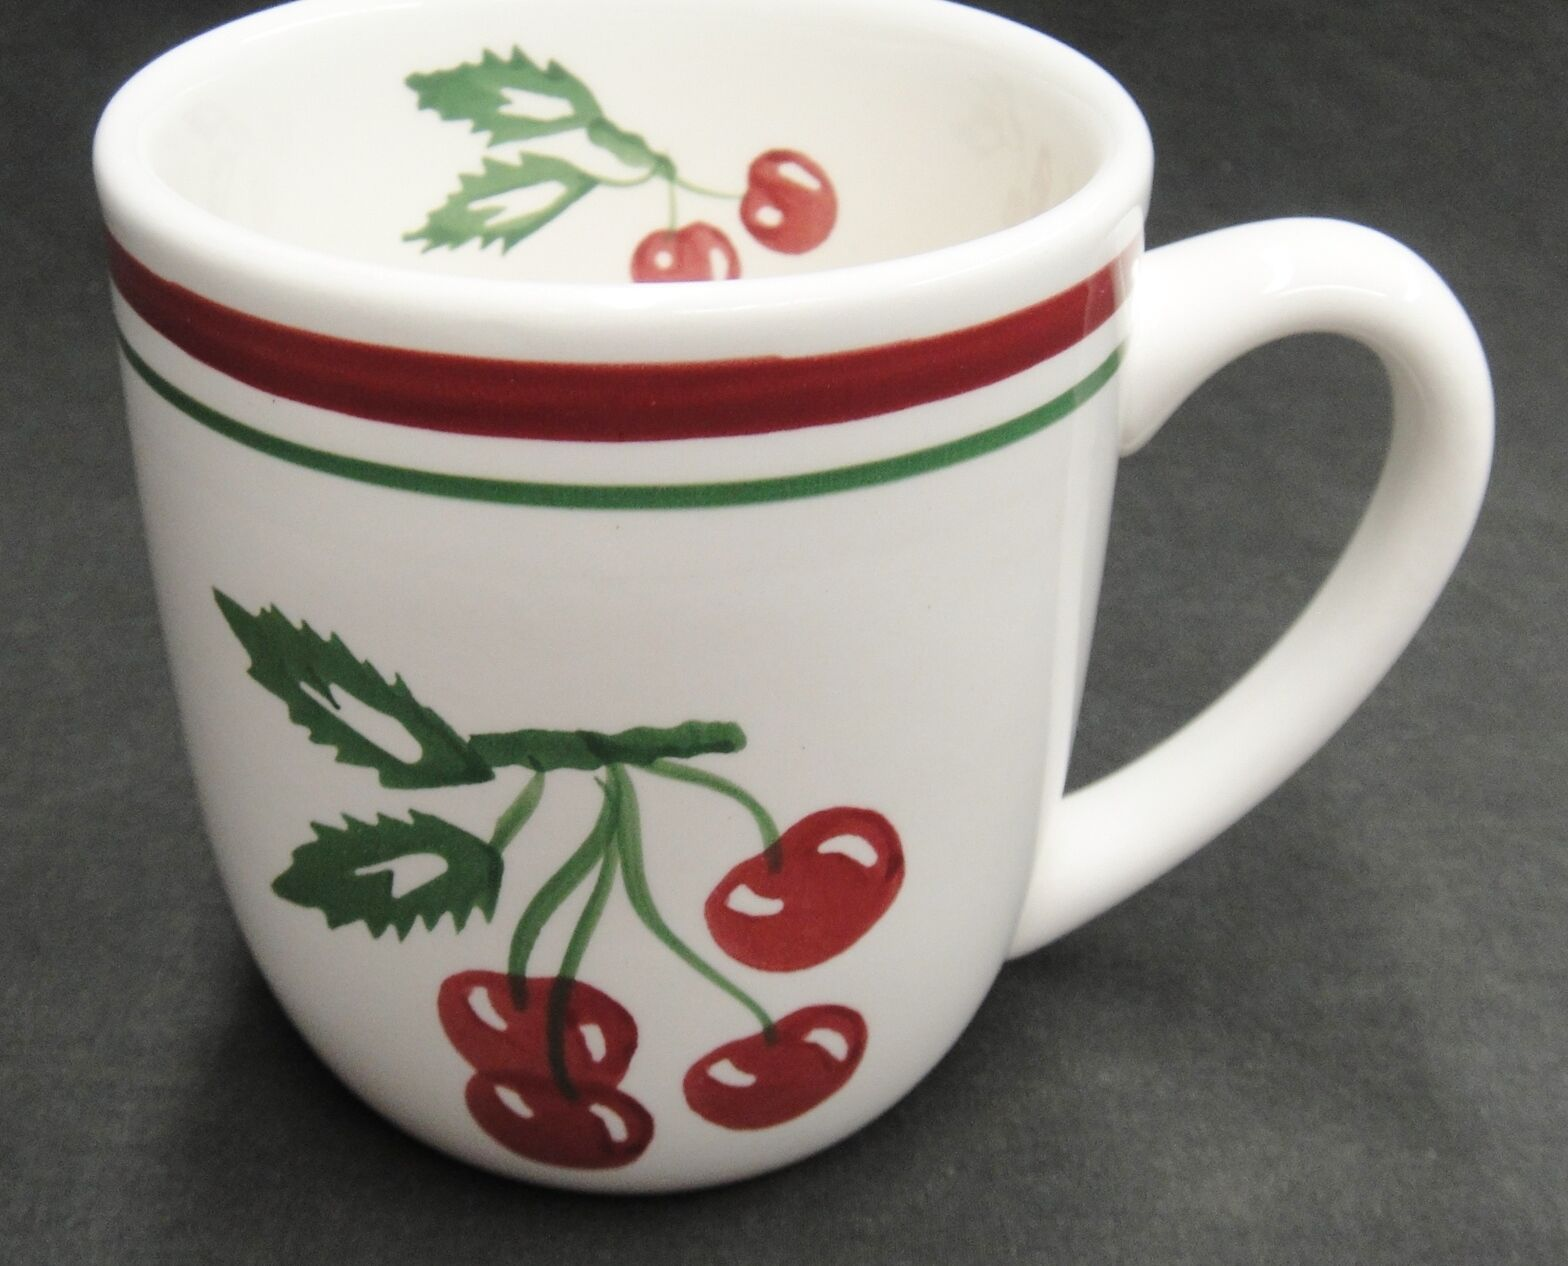 Tag Vintage Cherry Pattern Mug Red and Green Bands Cherries on Stems Leaves